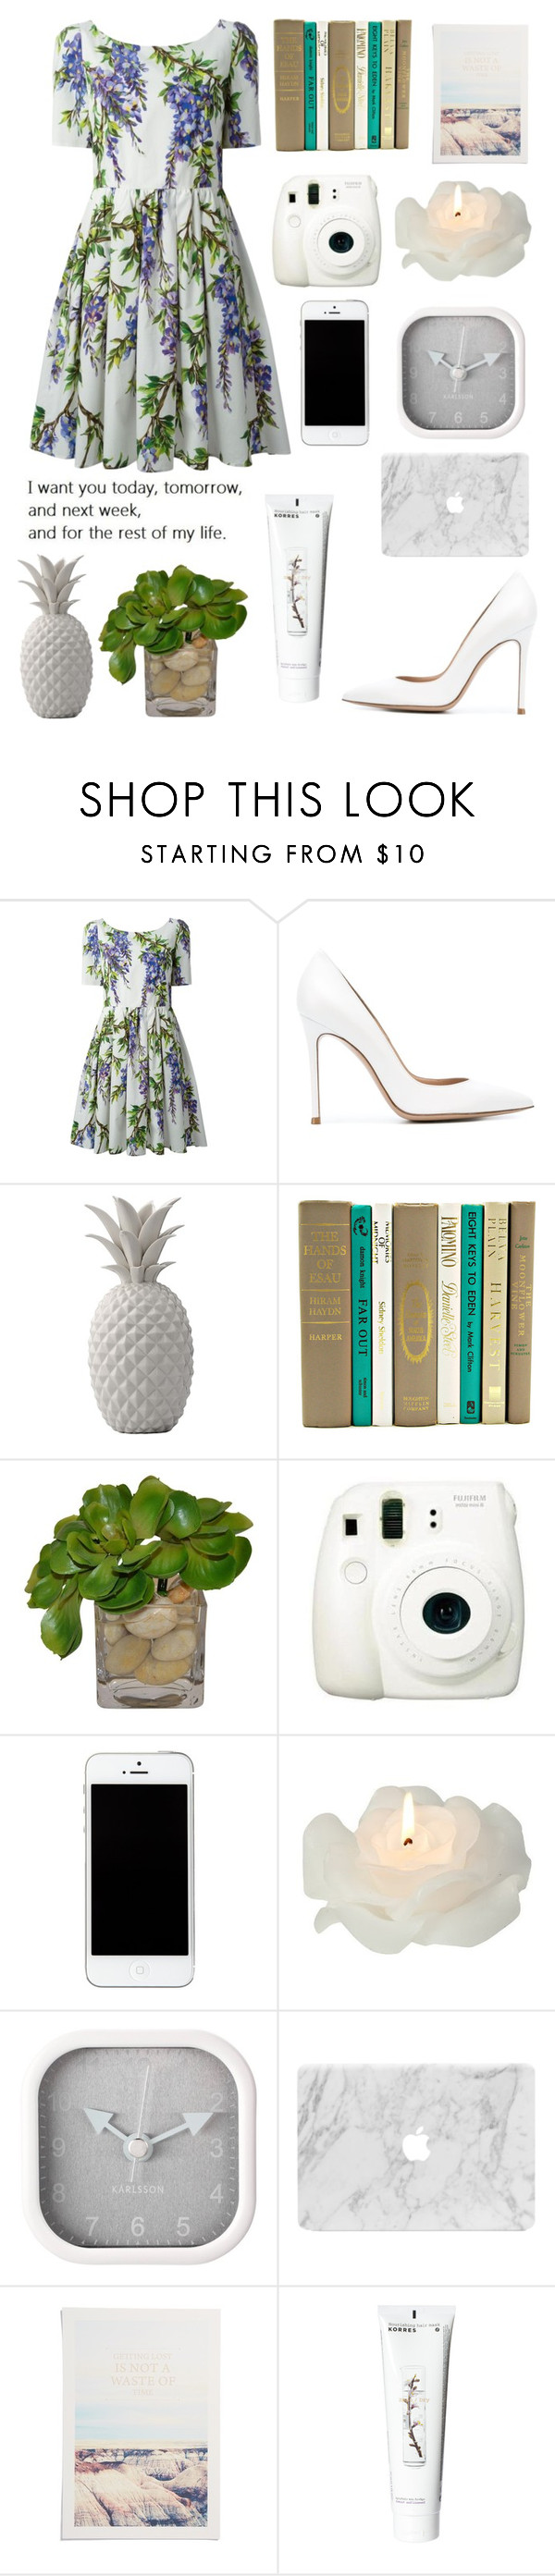 """""""#1039"""" by littleprincess555 ❤ liked on Polyvore featuring Dolce&Gabbana, Gianvito Rossi, Bloomingville, The French Bee, Fuji, Biedermann & Sons, Karlsson, Arts District Printing Co., Korres and women's clothing"""